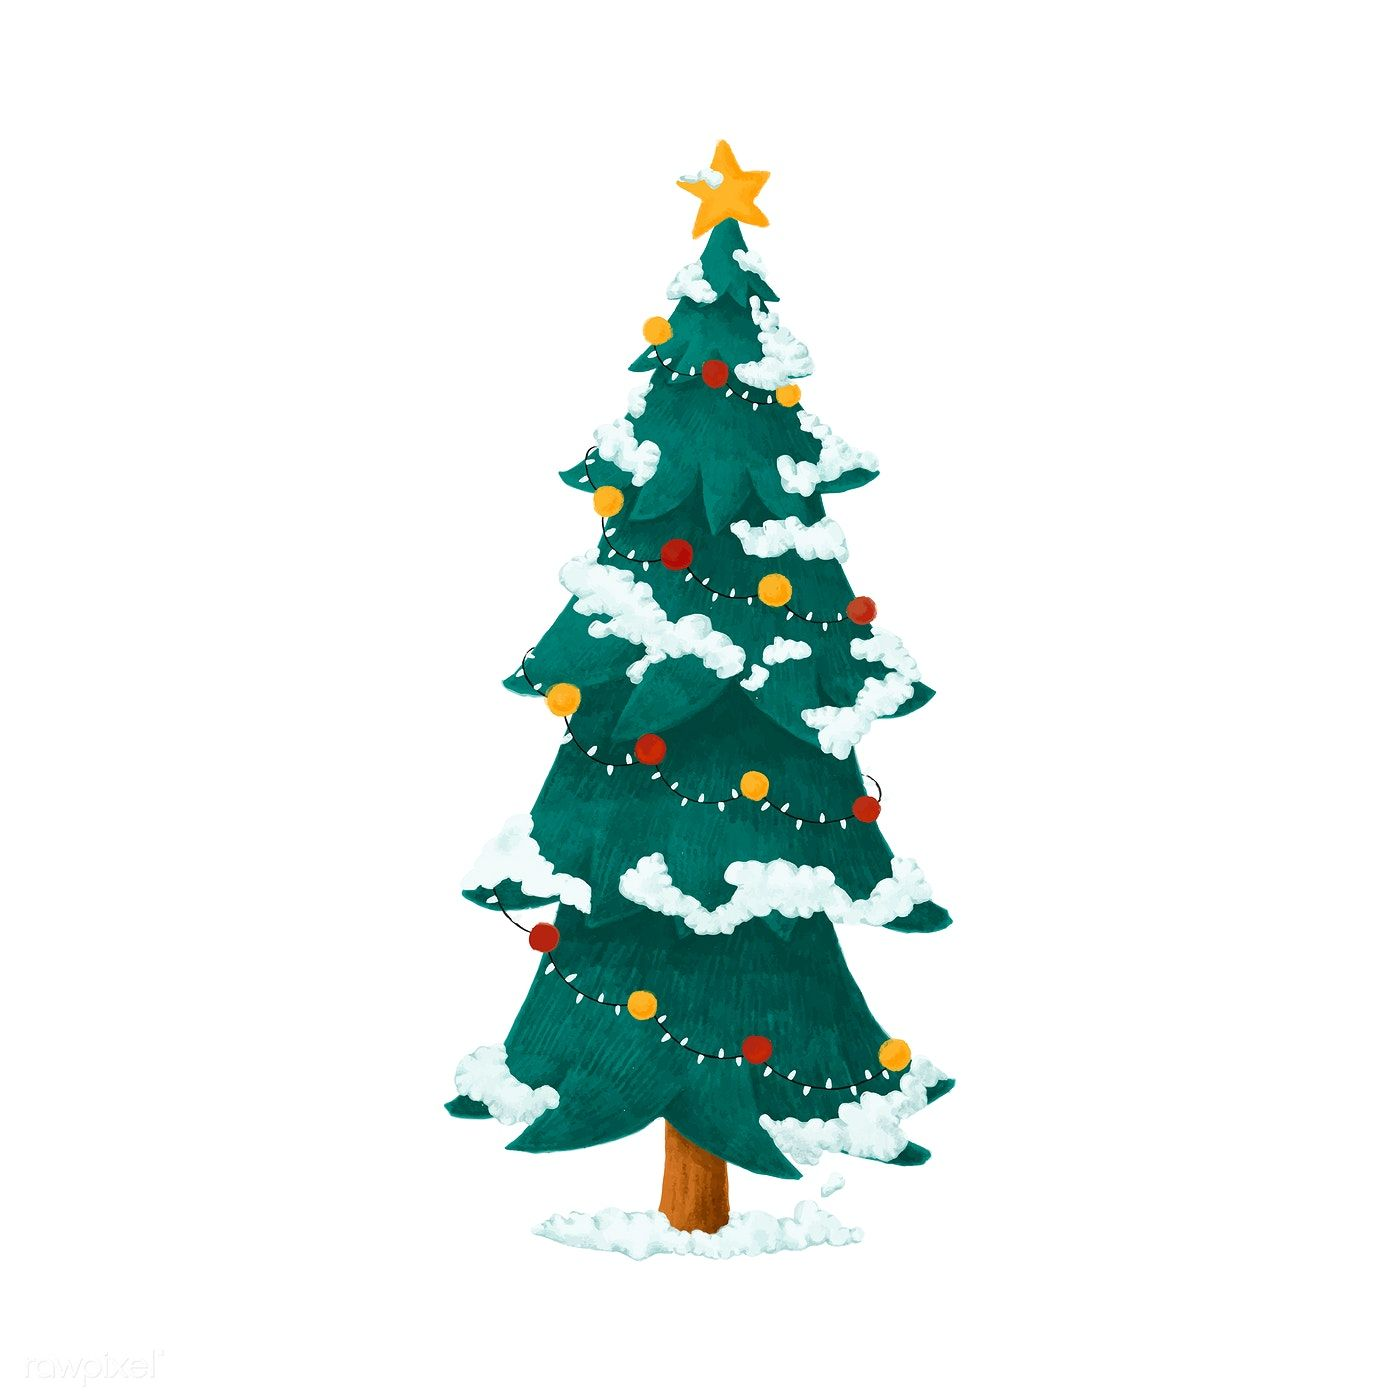 Hand Drawn Decorated Christmas Tree Illustration Free Image By Rawpixel Com Noon Christmas Tree Drawing Christmas Illustration Tree Drawing